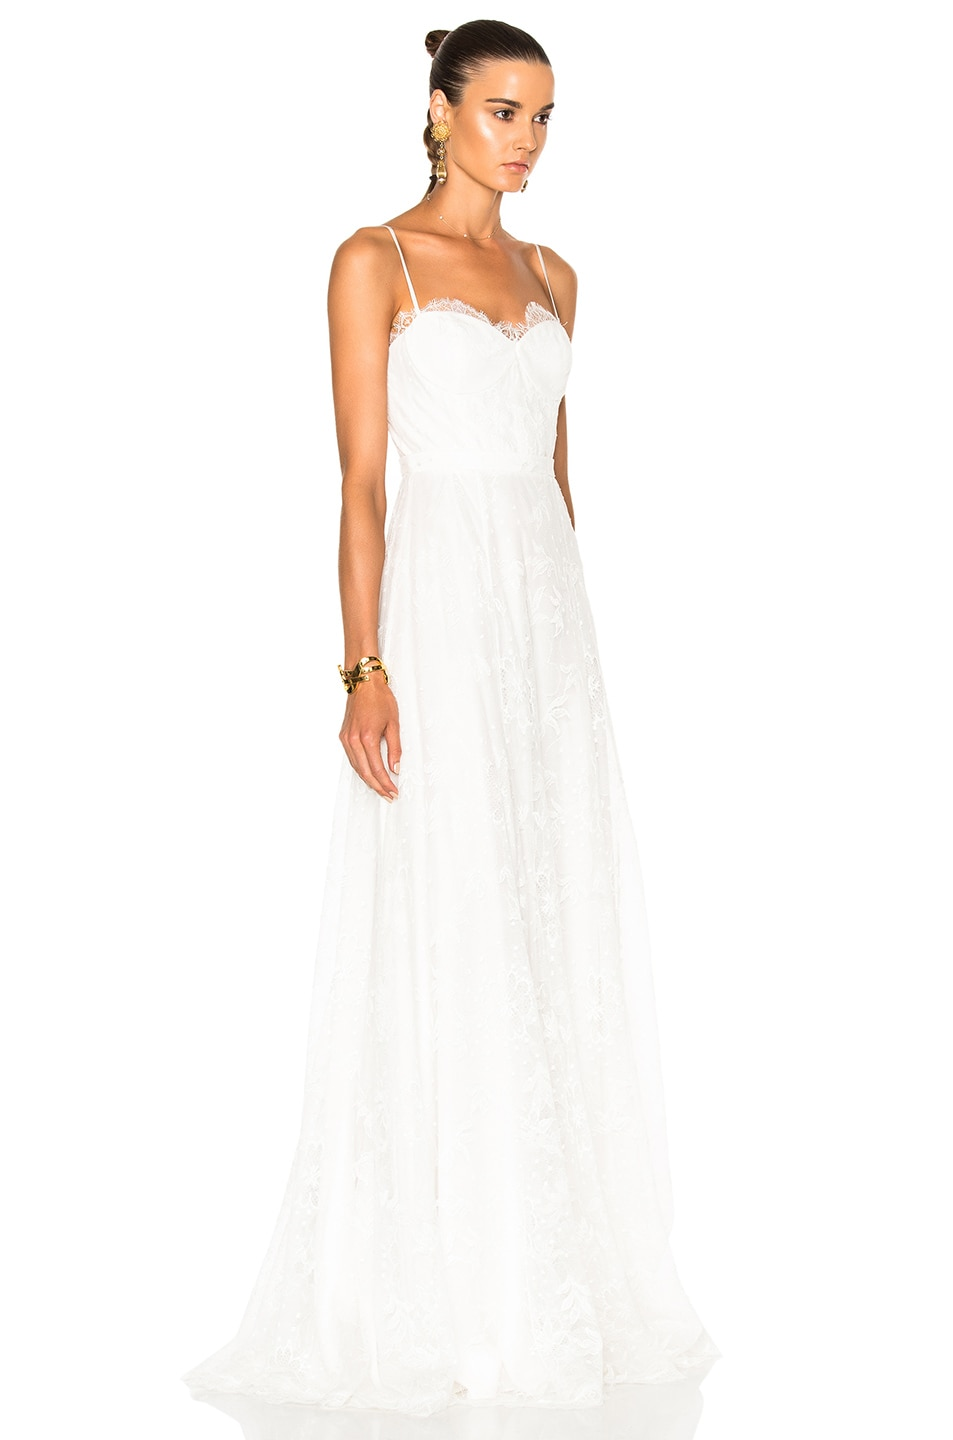 Houghton Katie Lace Slip Dress with Handkerchief Hem in Ivory | FWRD